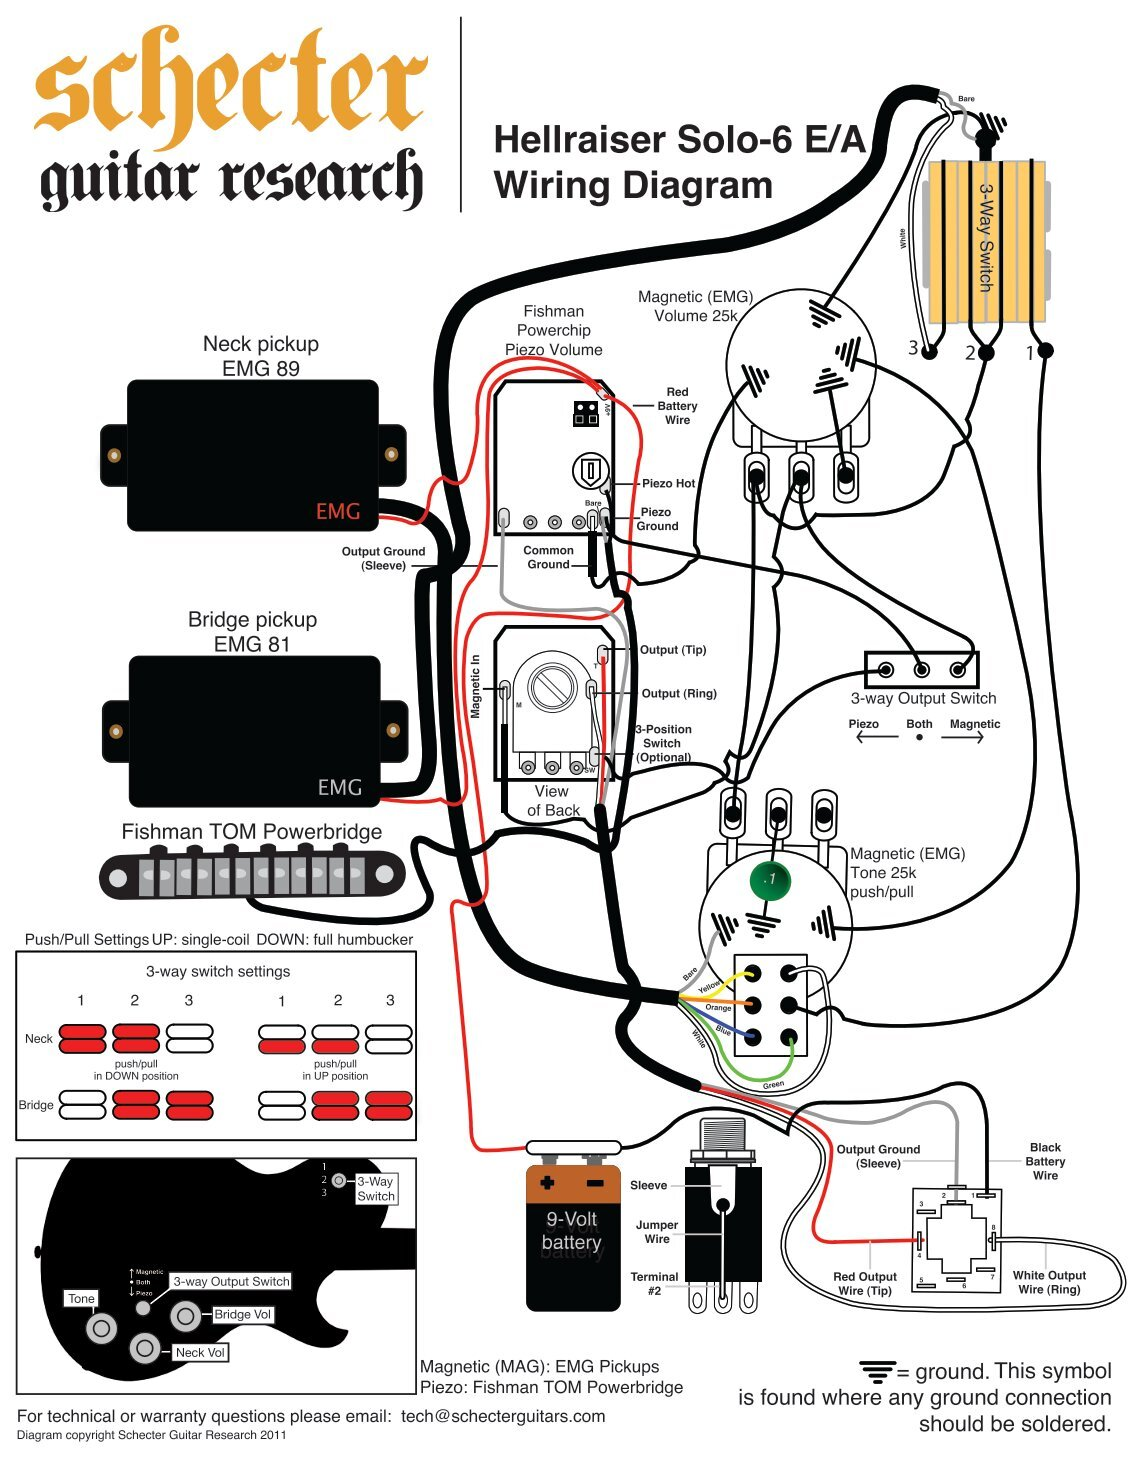 hellraiser solo 6 wiring diagram schecter guitars?quality\\\\\\\\\\\\\\\\\\\\\\\\\\\\\\\=85 emg hz wiring diagram color emg hz passive wiring diagram \u2022 205 ufc co Old EMG Wiring Diagrams at bayanpartner.co